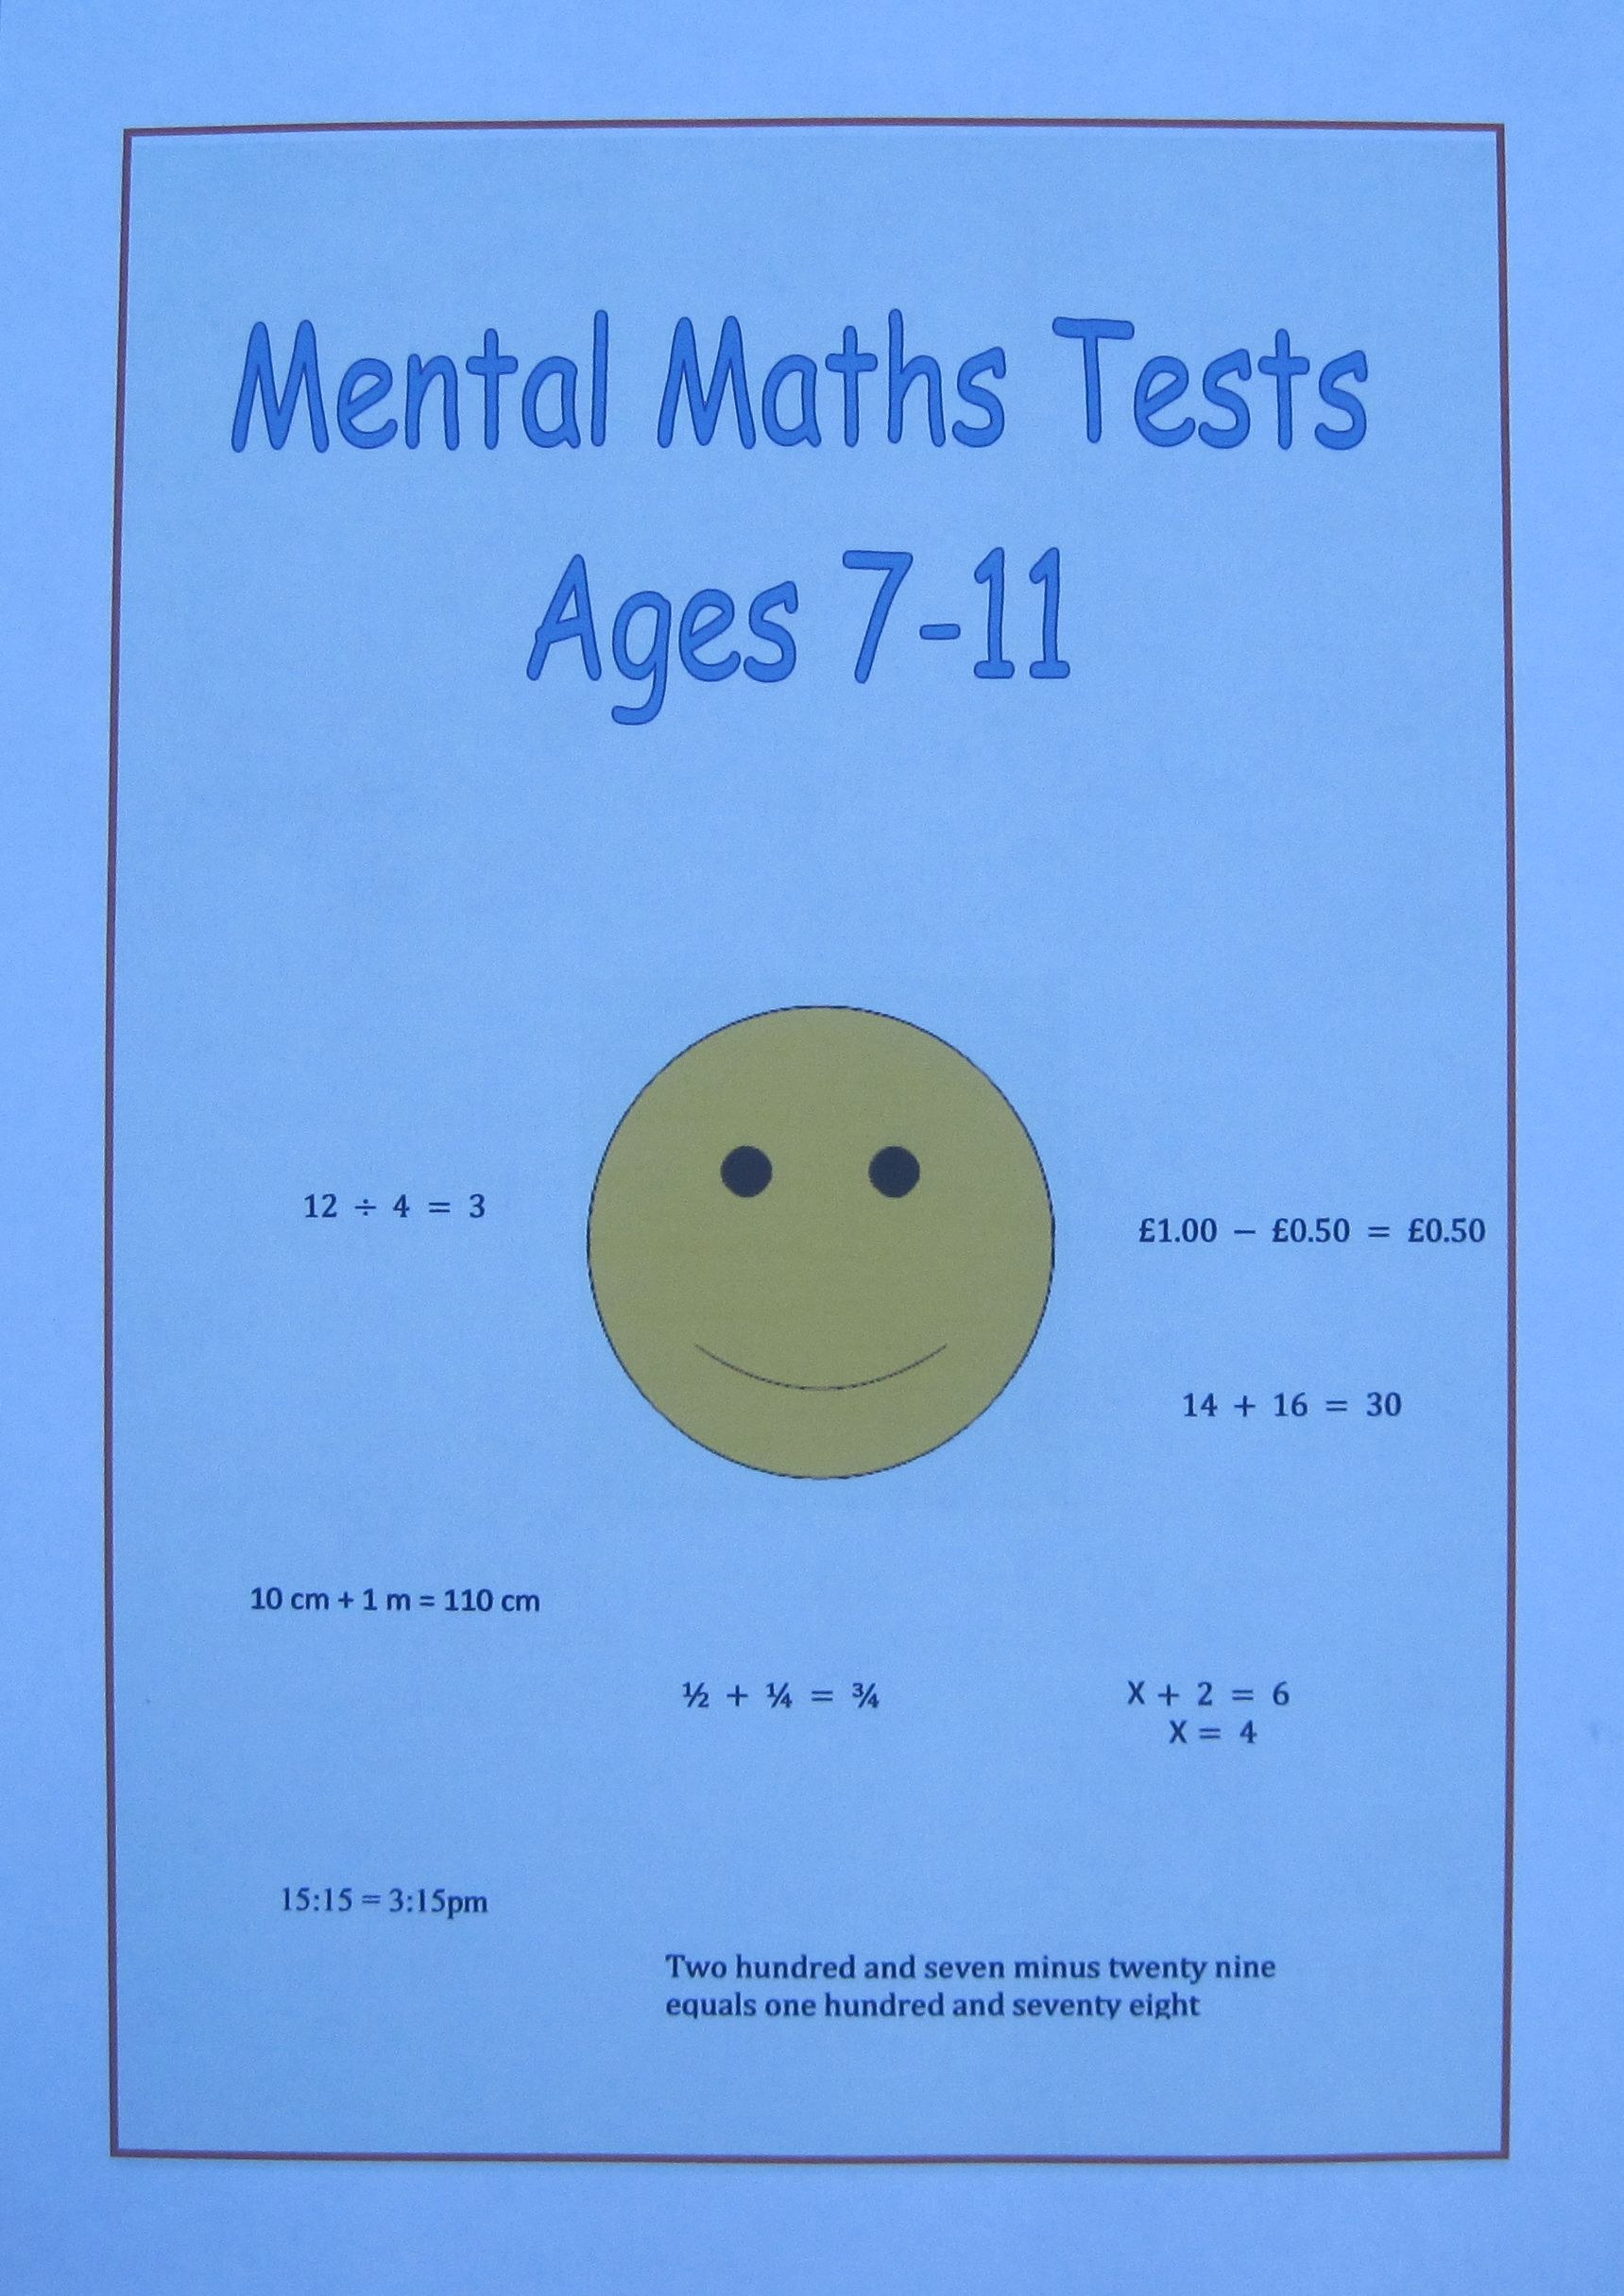 Mental Maths Tests For Each Year Group Aged 7 8 9 10